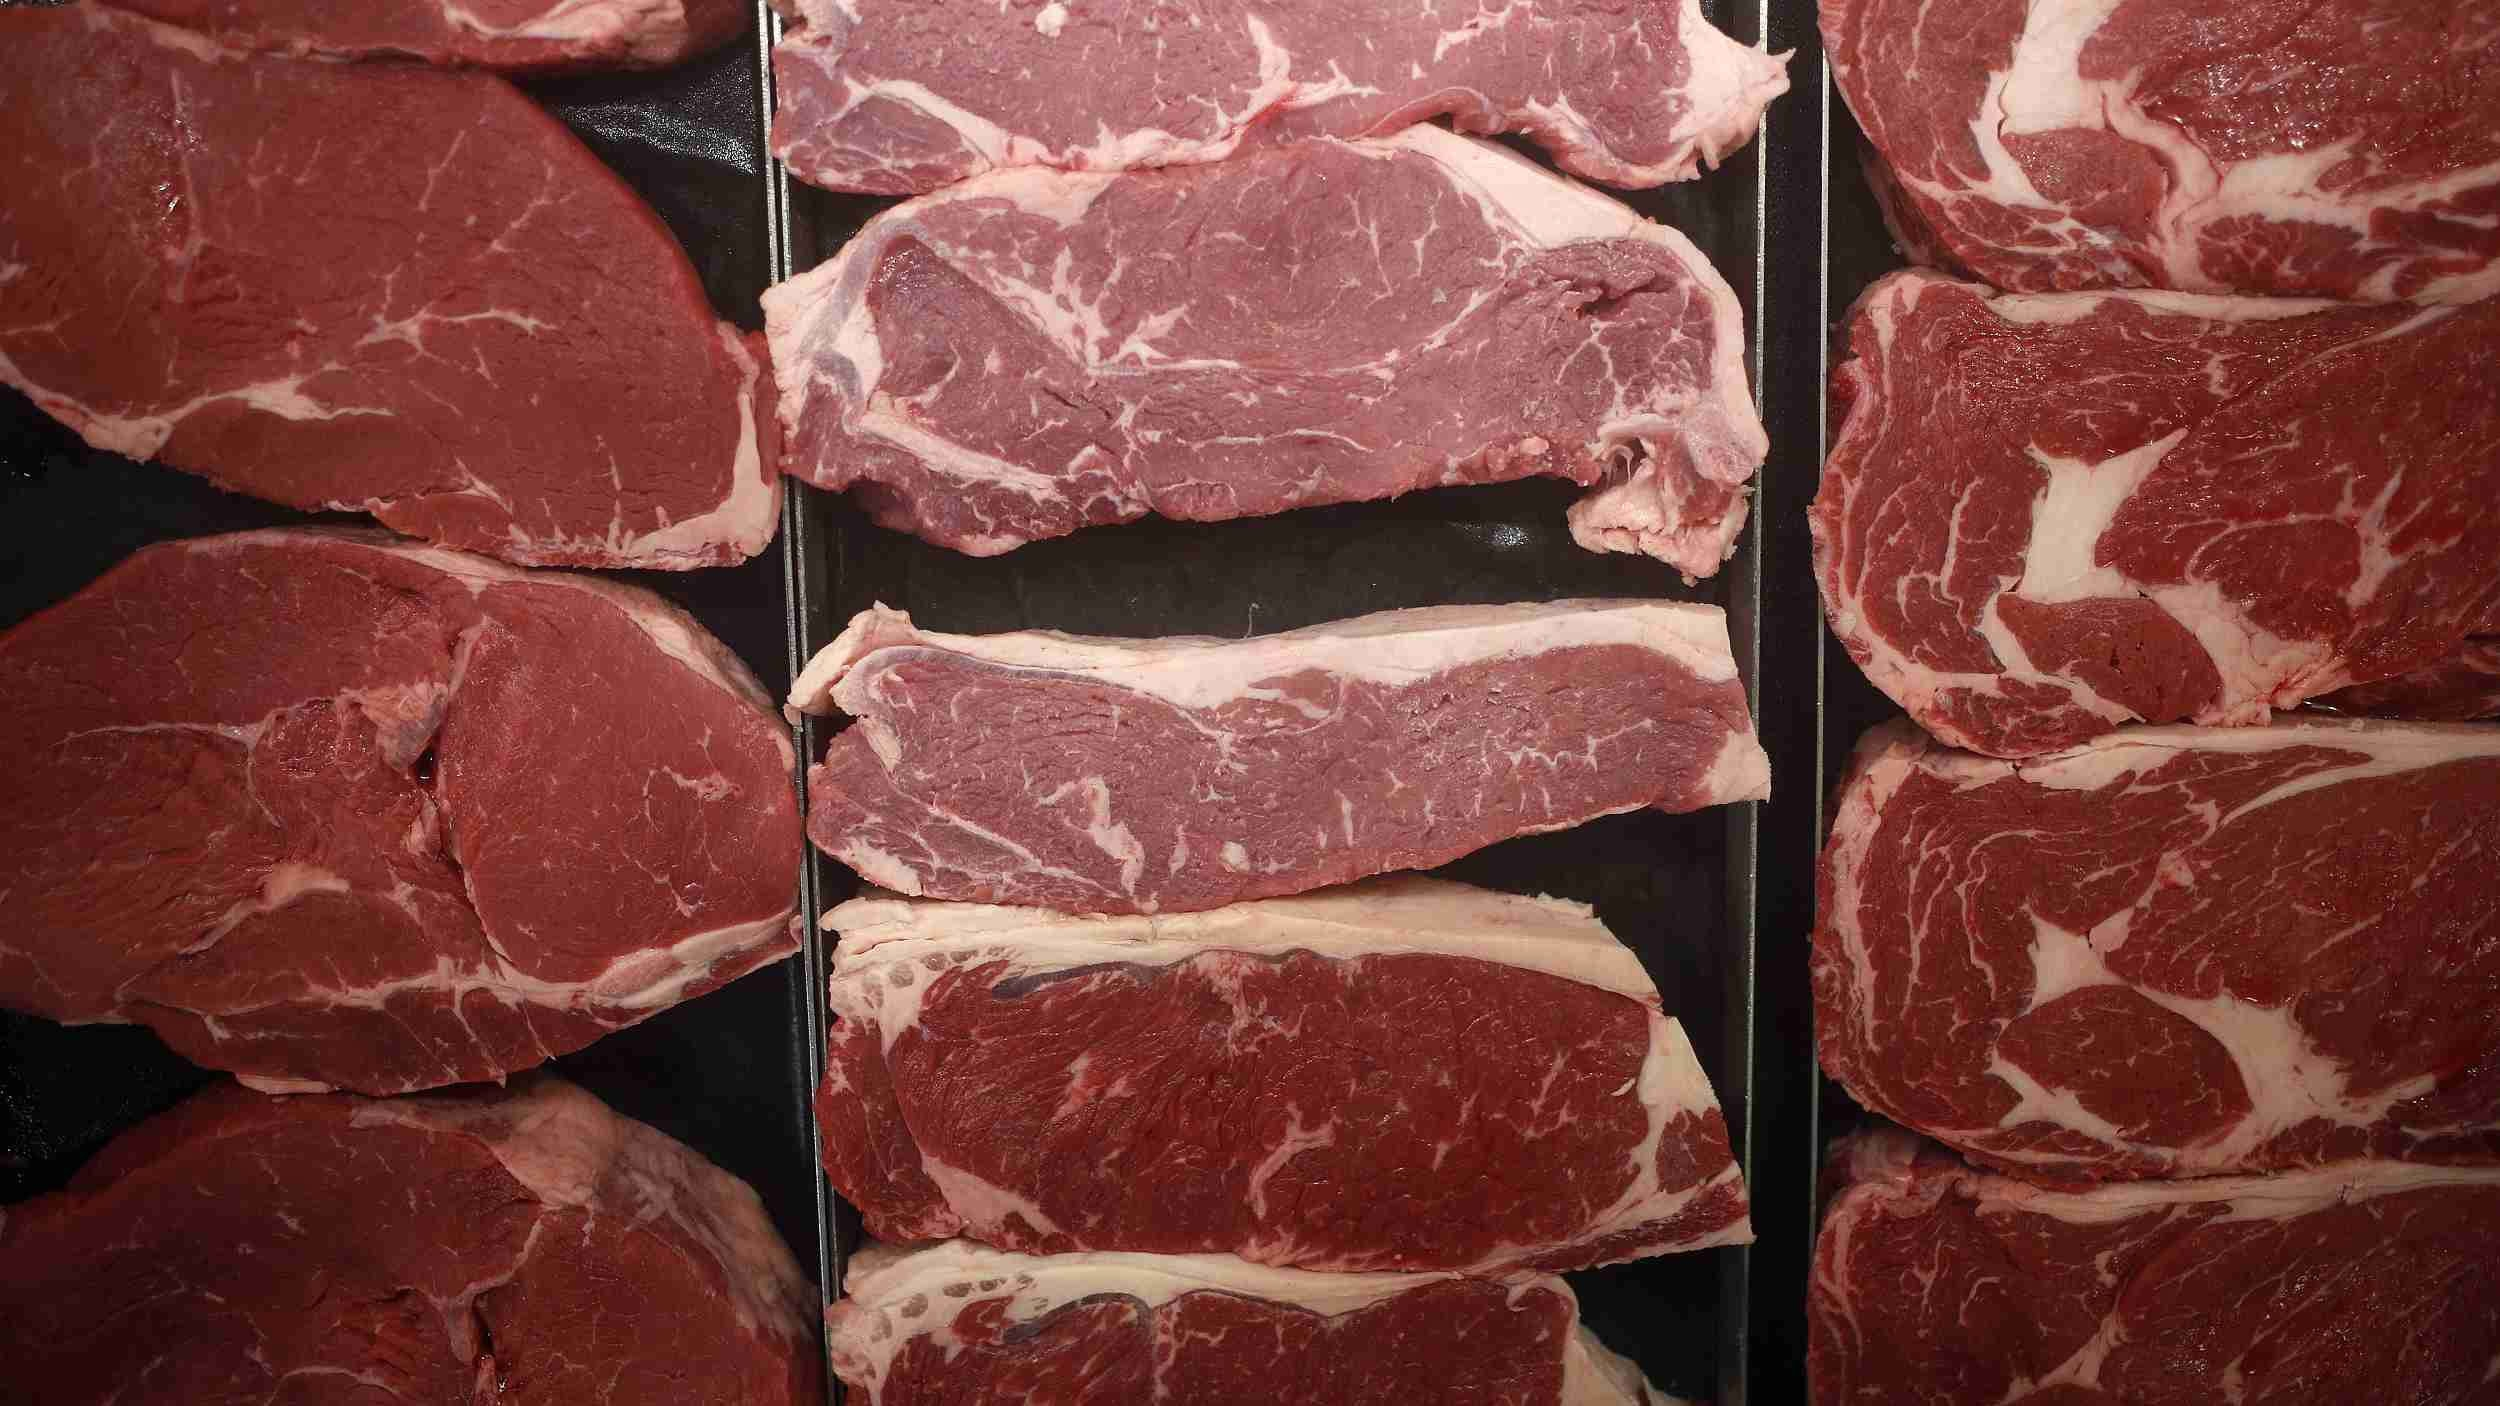 China's tariff rate adjustment for Australian beef not trade remedy measure: MOC